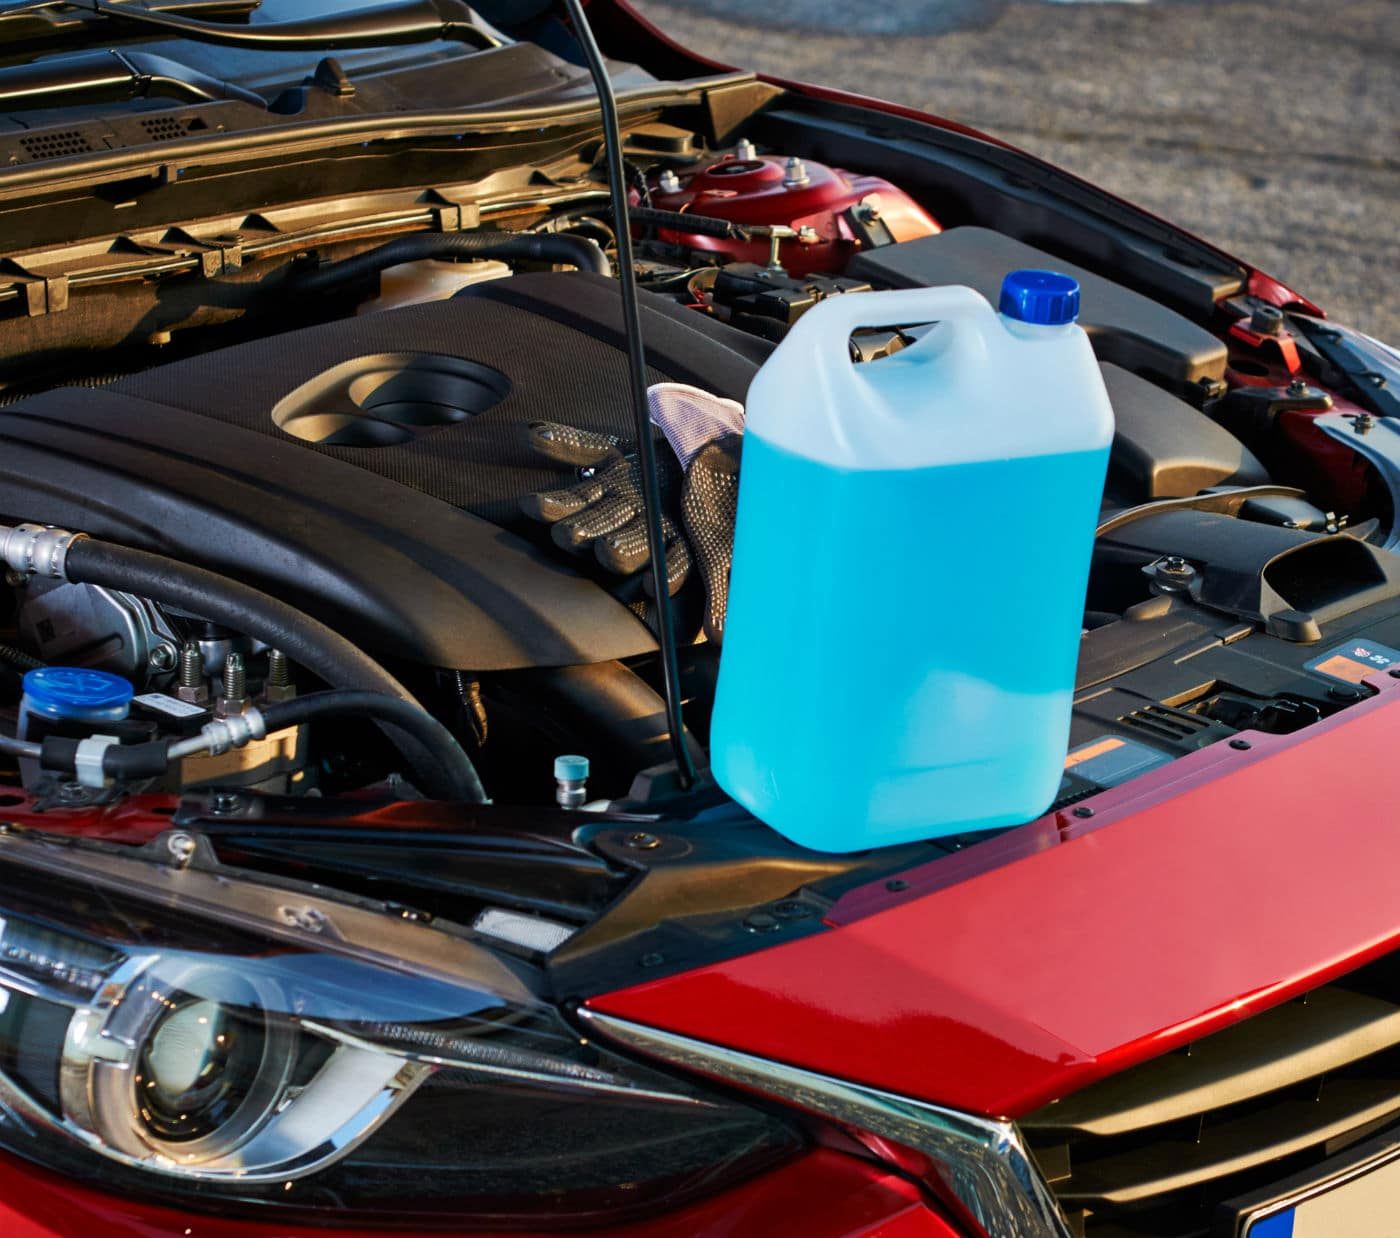 Vodka made illegally from washer fluid